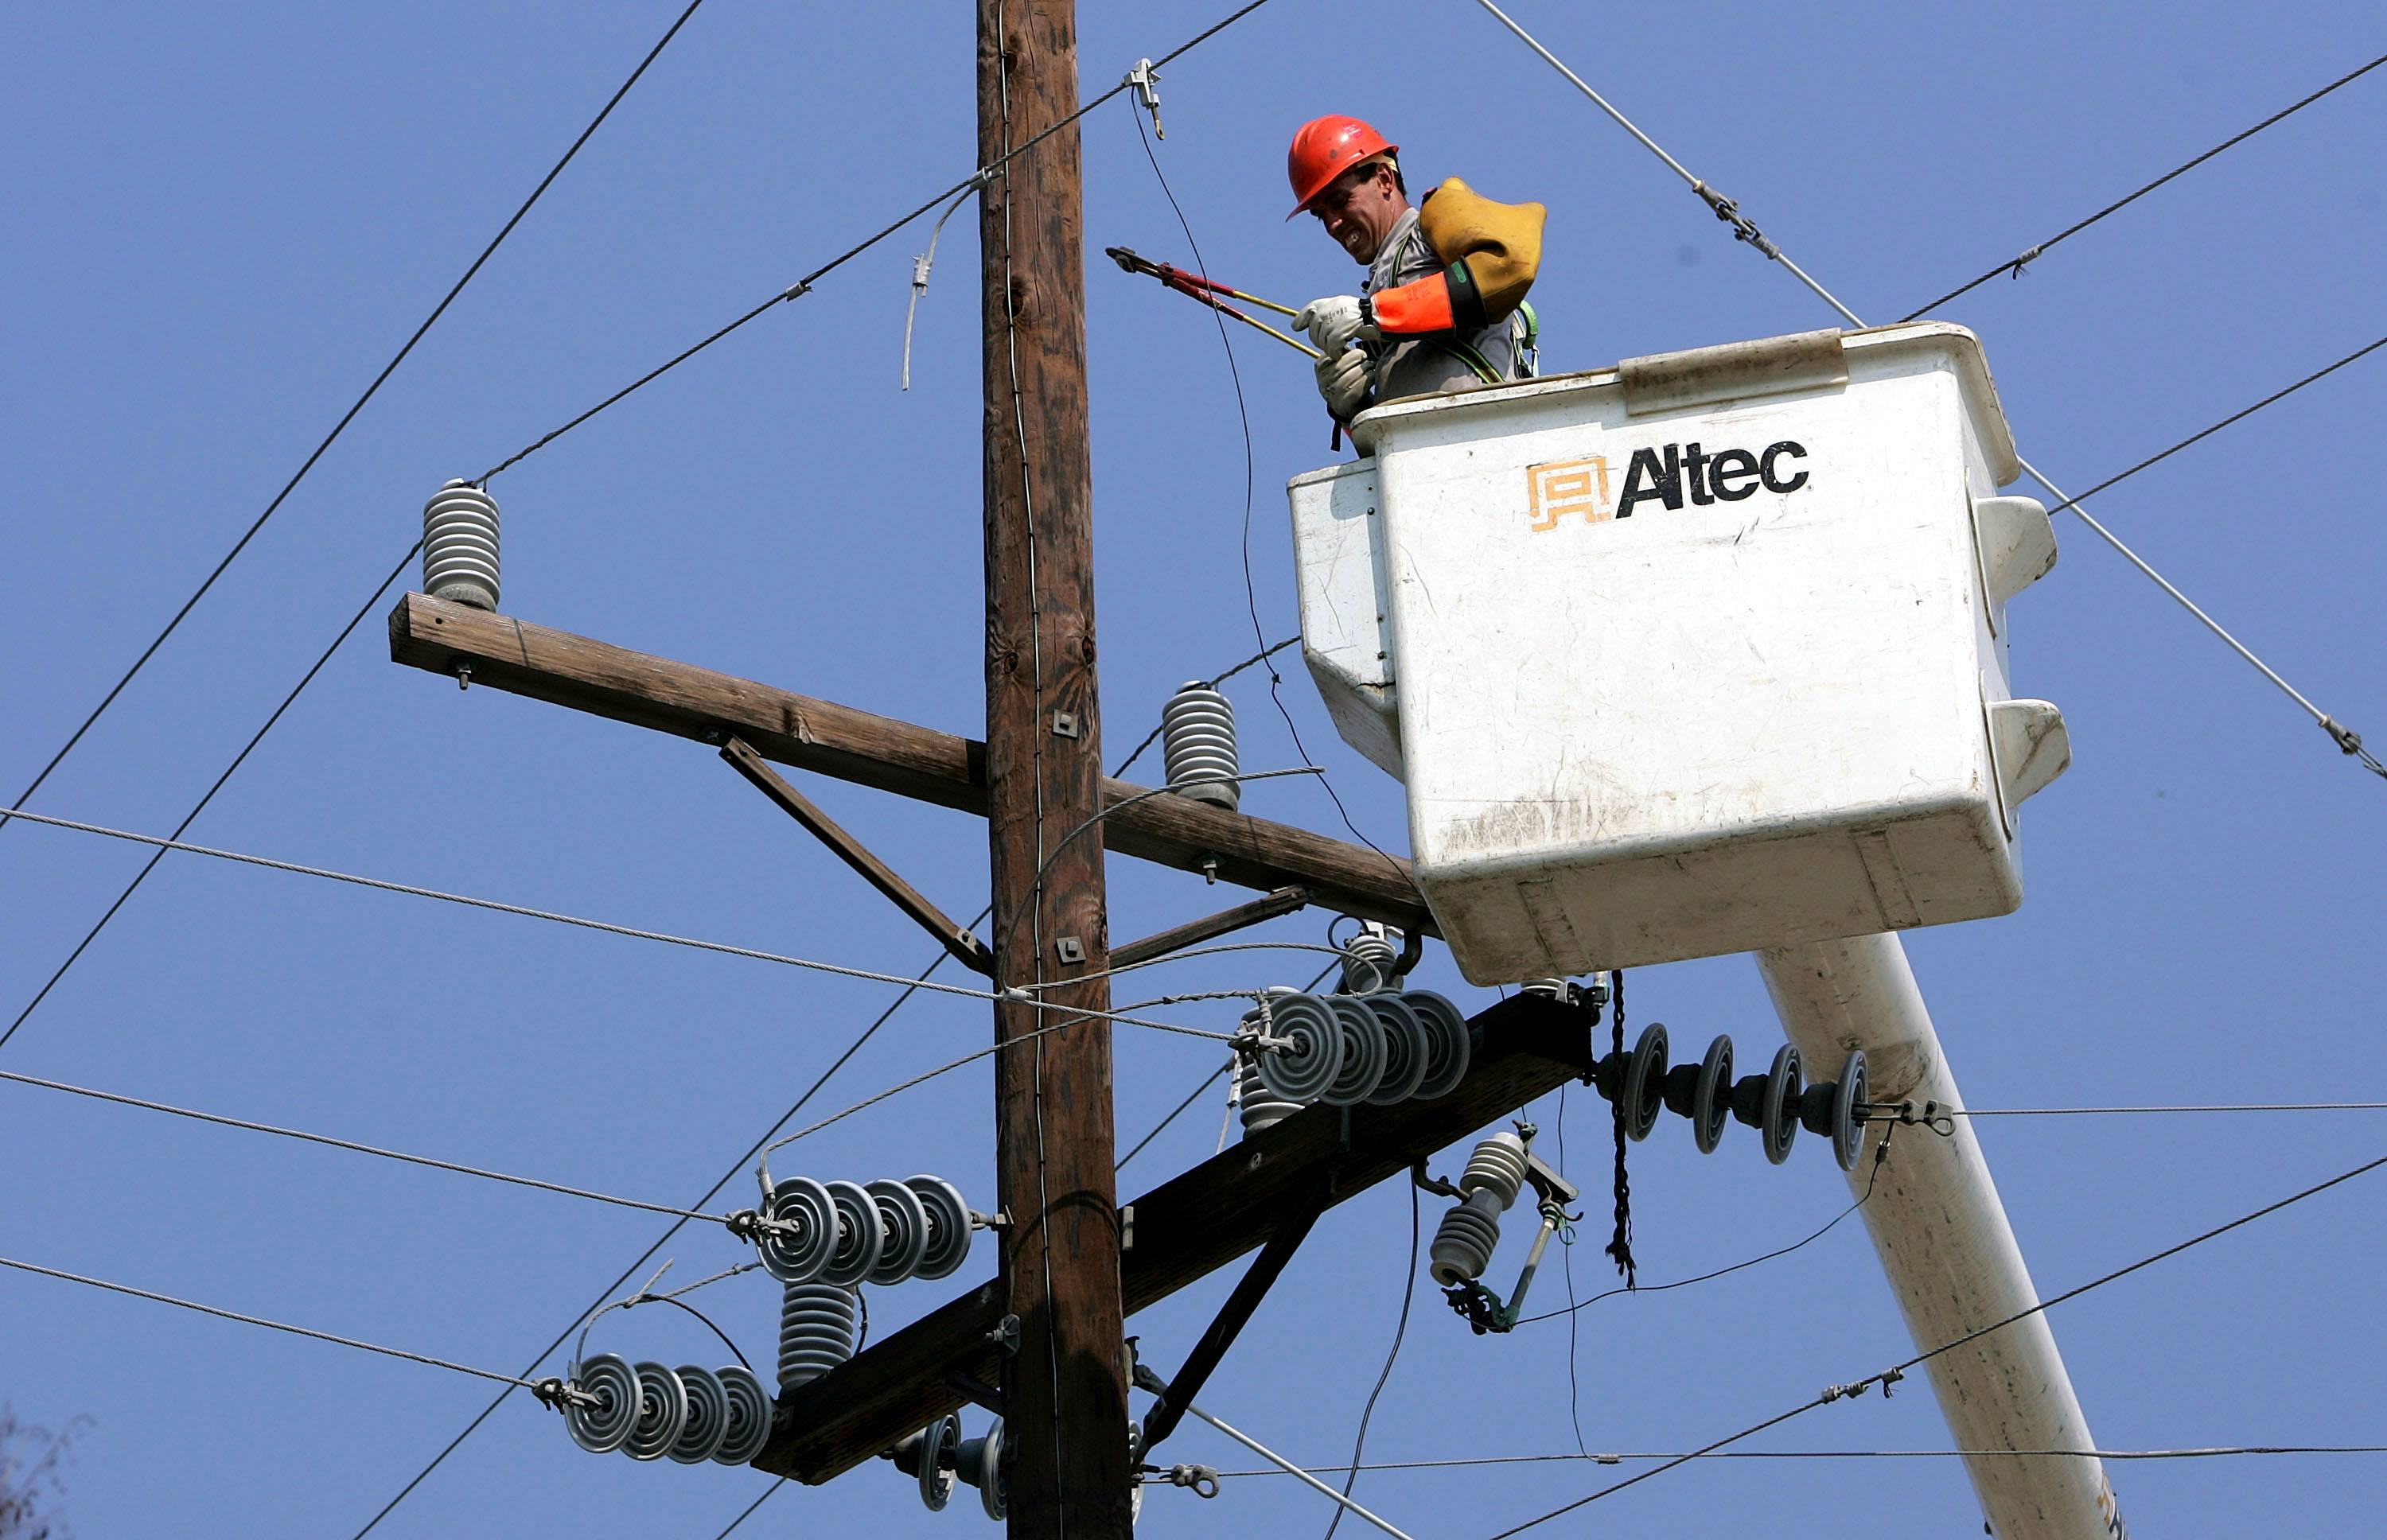 A utility worker repairs a power line